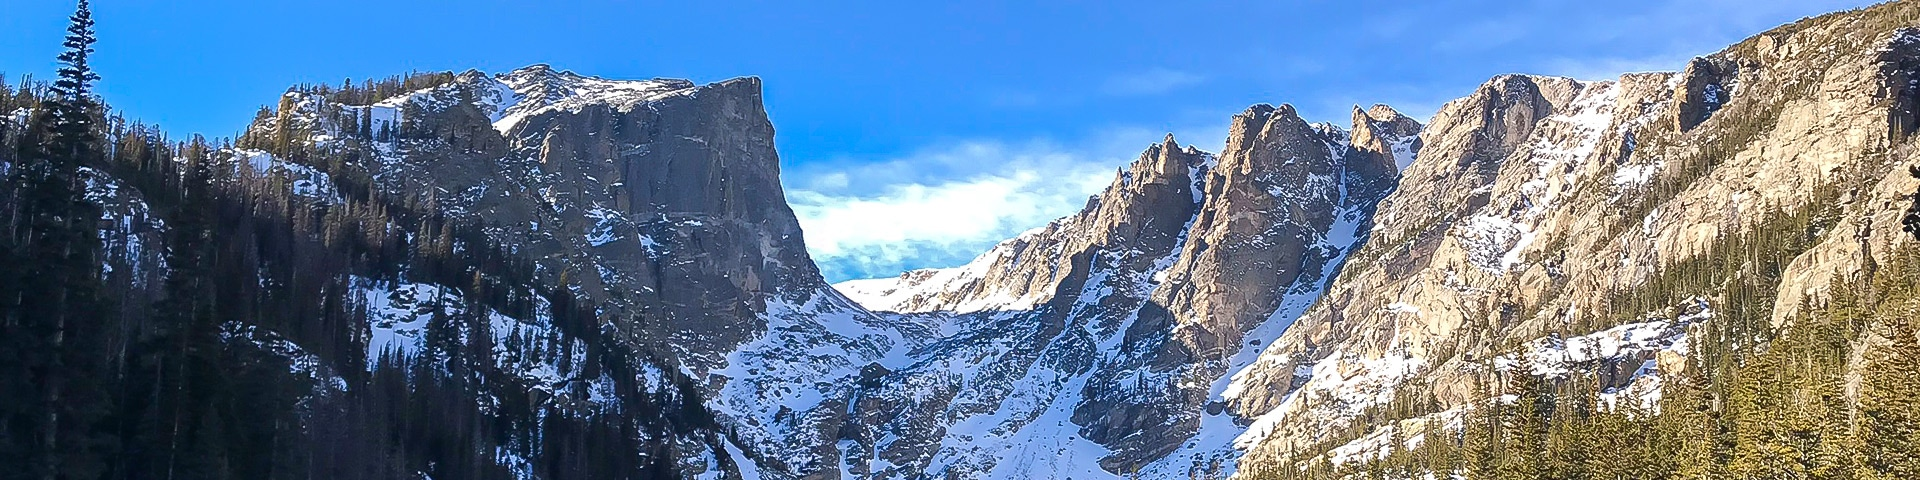 Panorama of Dream Lake snowshoe trail in Rocky Mountain National Park, Colorado